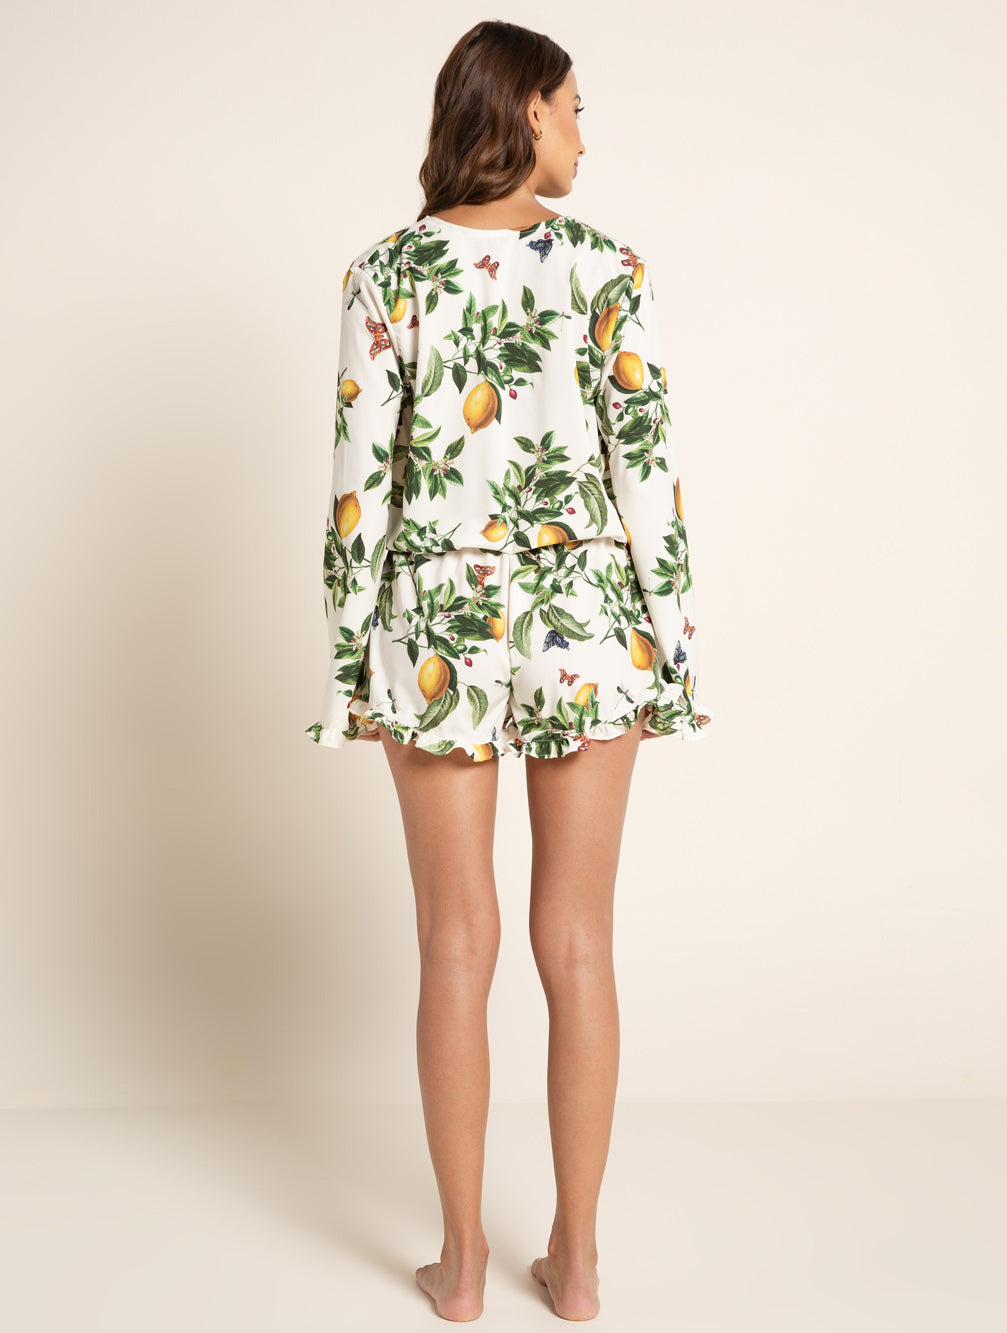 LARISSA EVERGREEN PLAYSUIT - Kaia London